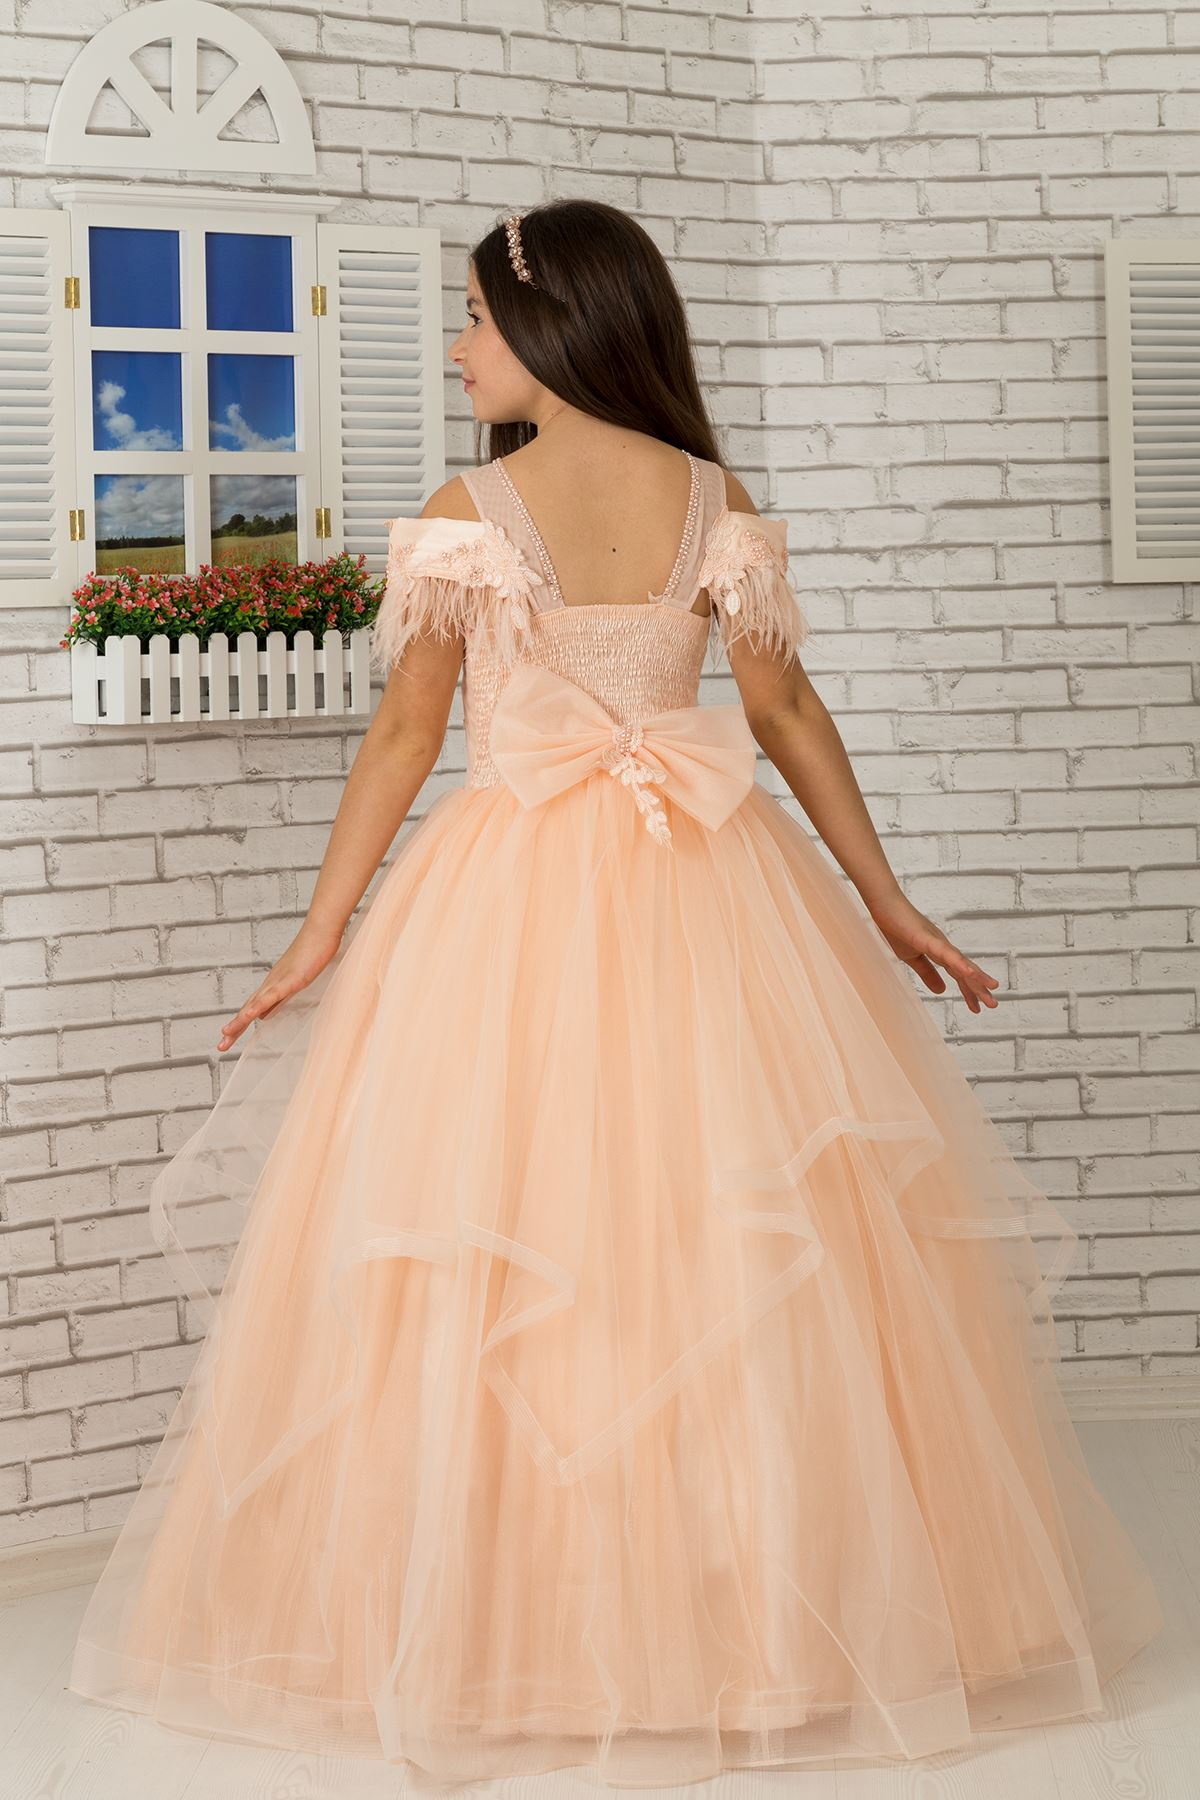 Shaggy kayak neckline detailed, scondied, tulle fluffy girl's Evening Dress Dress 604 salmon